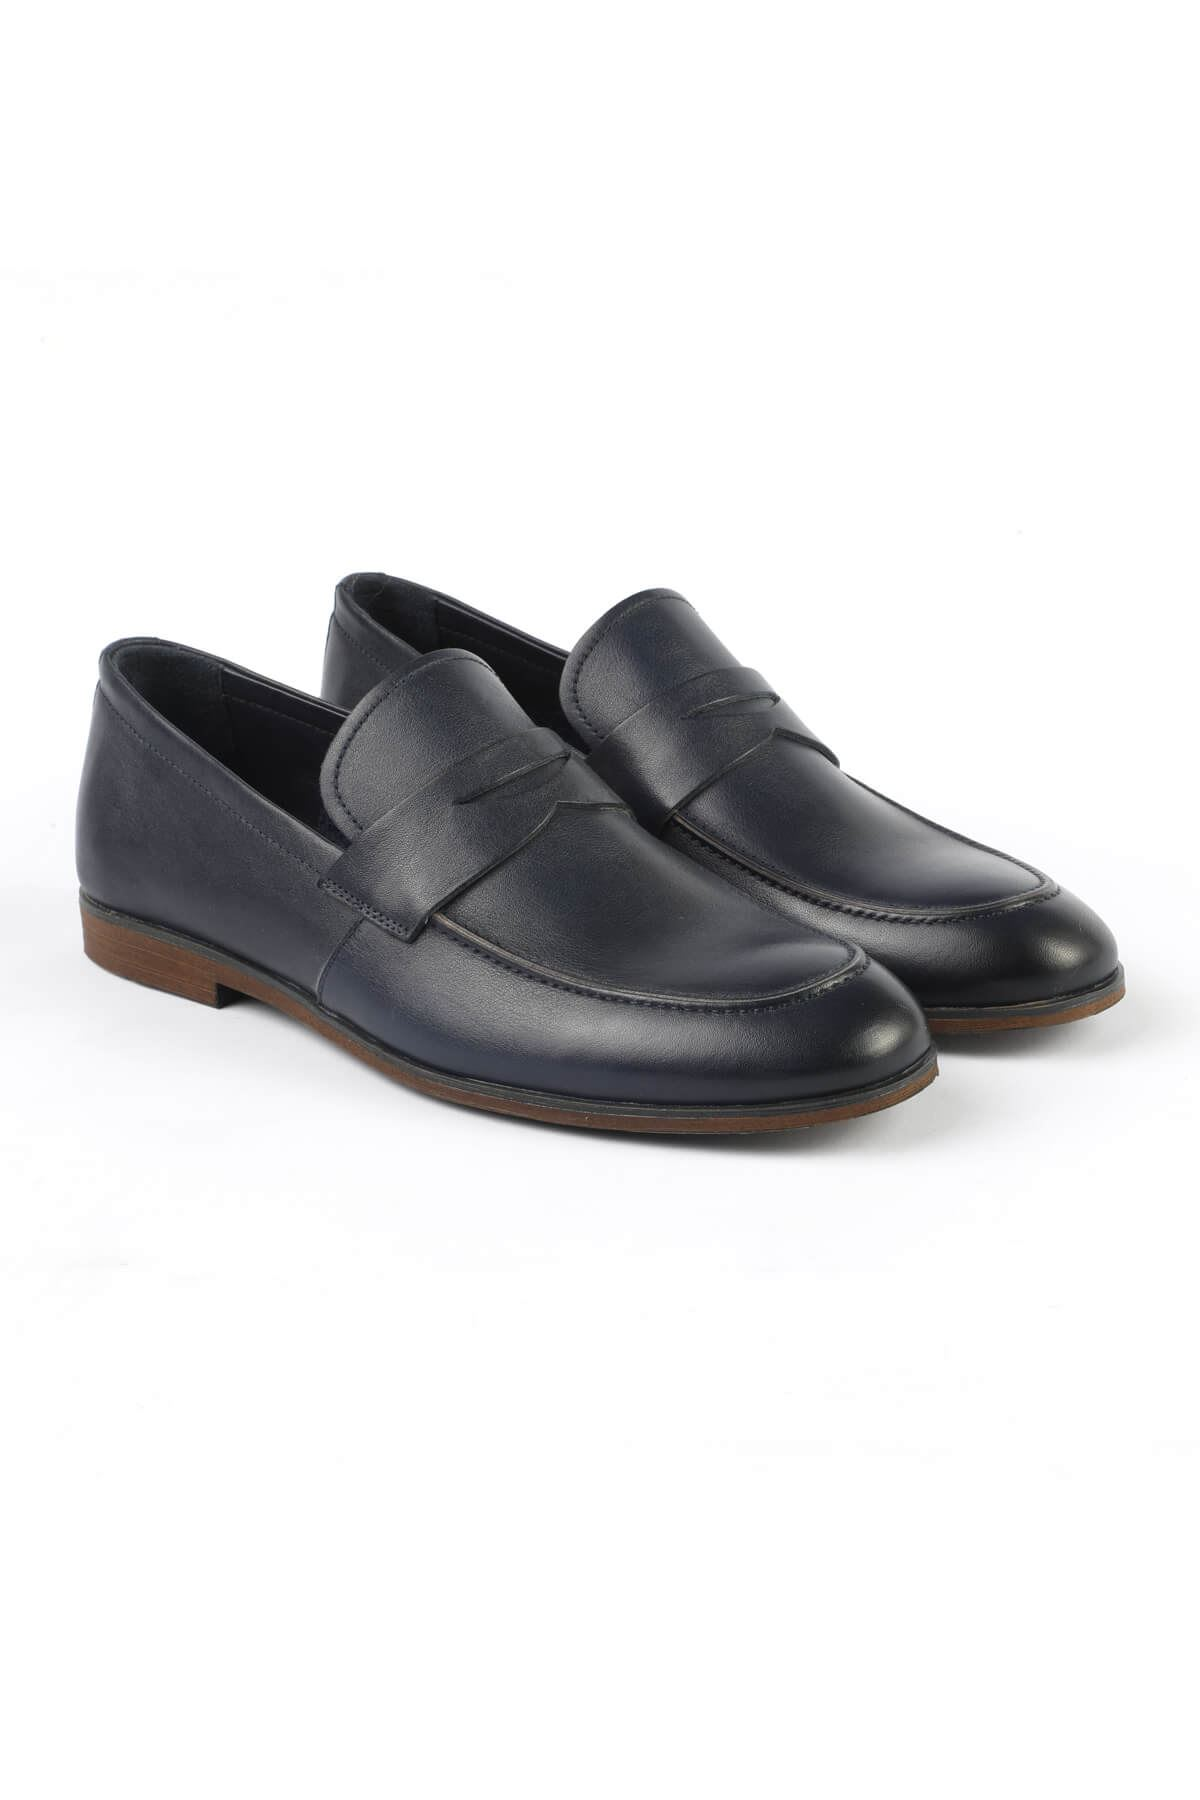 Libero L160 Navy Blue Loafer Shoes